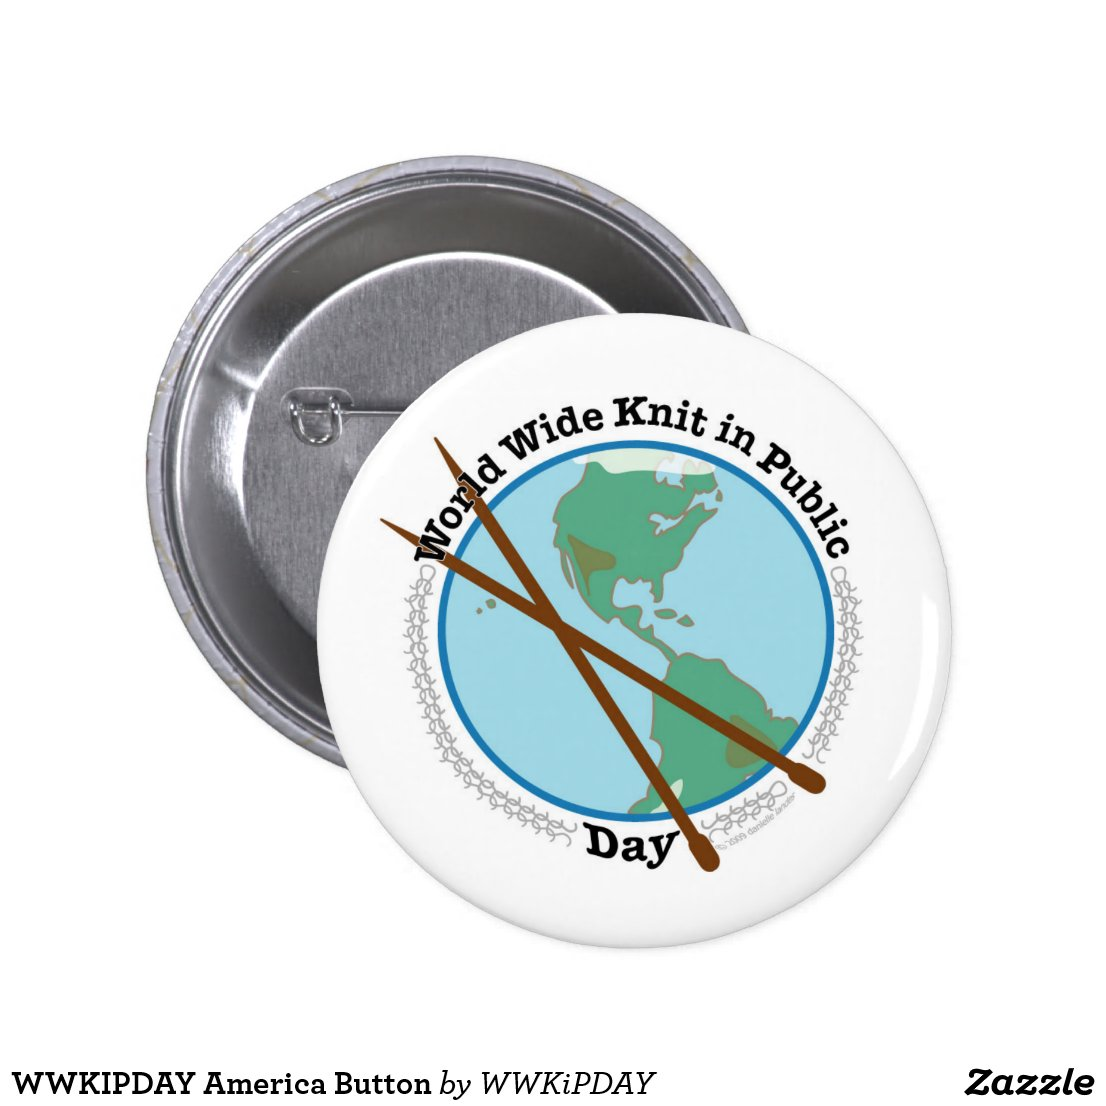 WWKIPDAY America Button